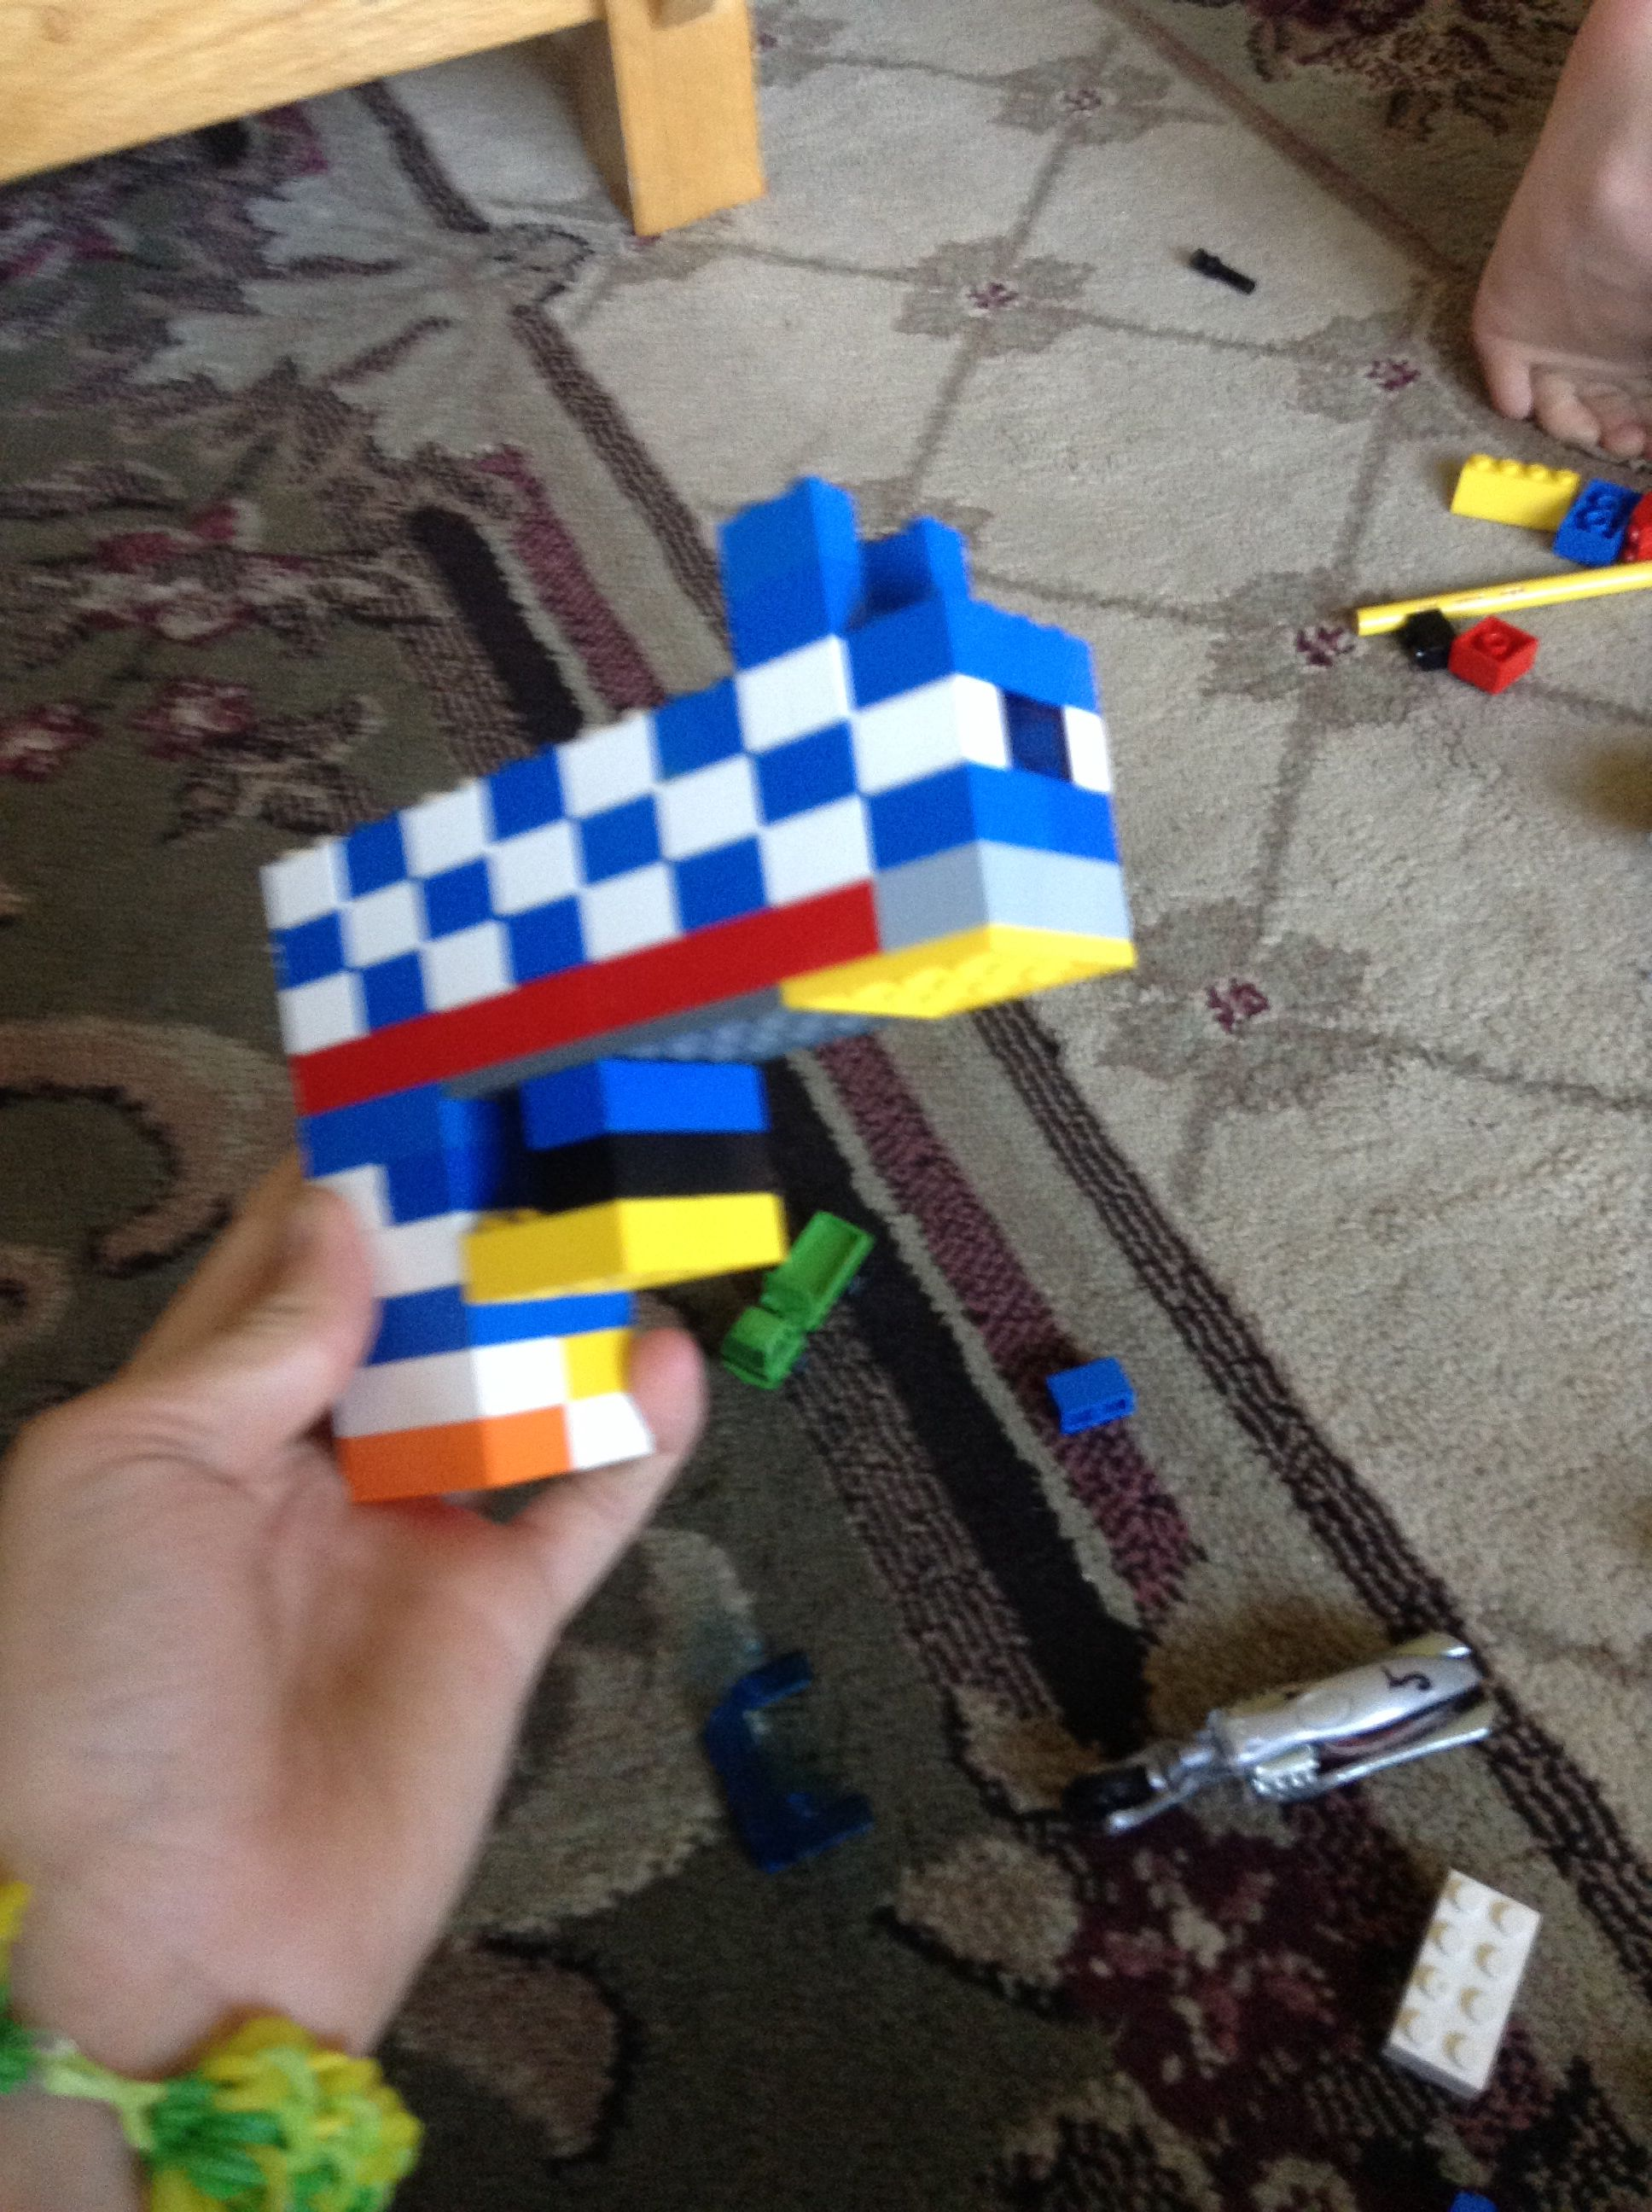 Lego gun side view